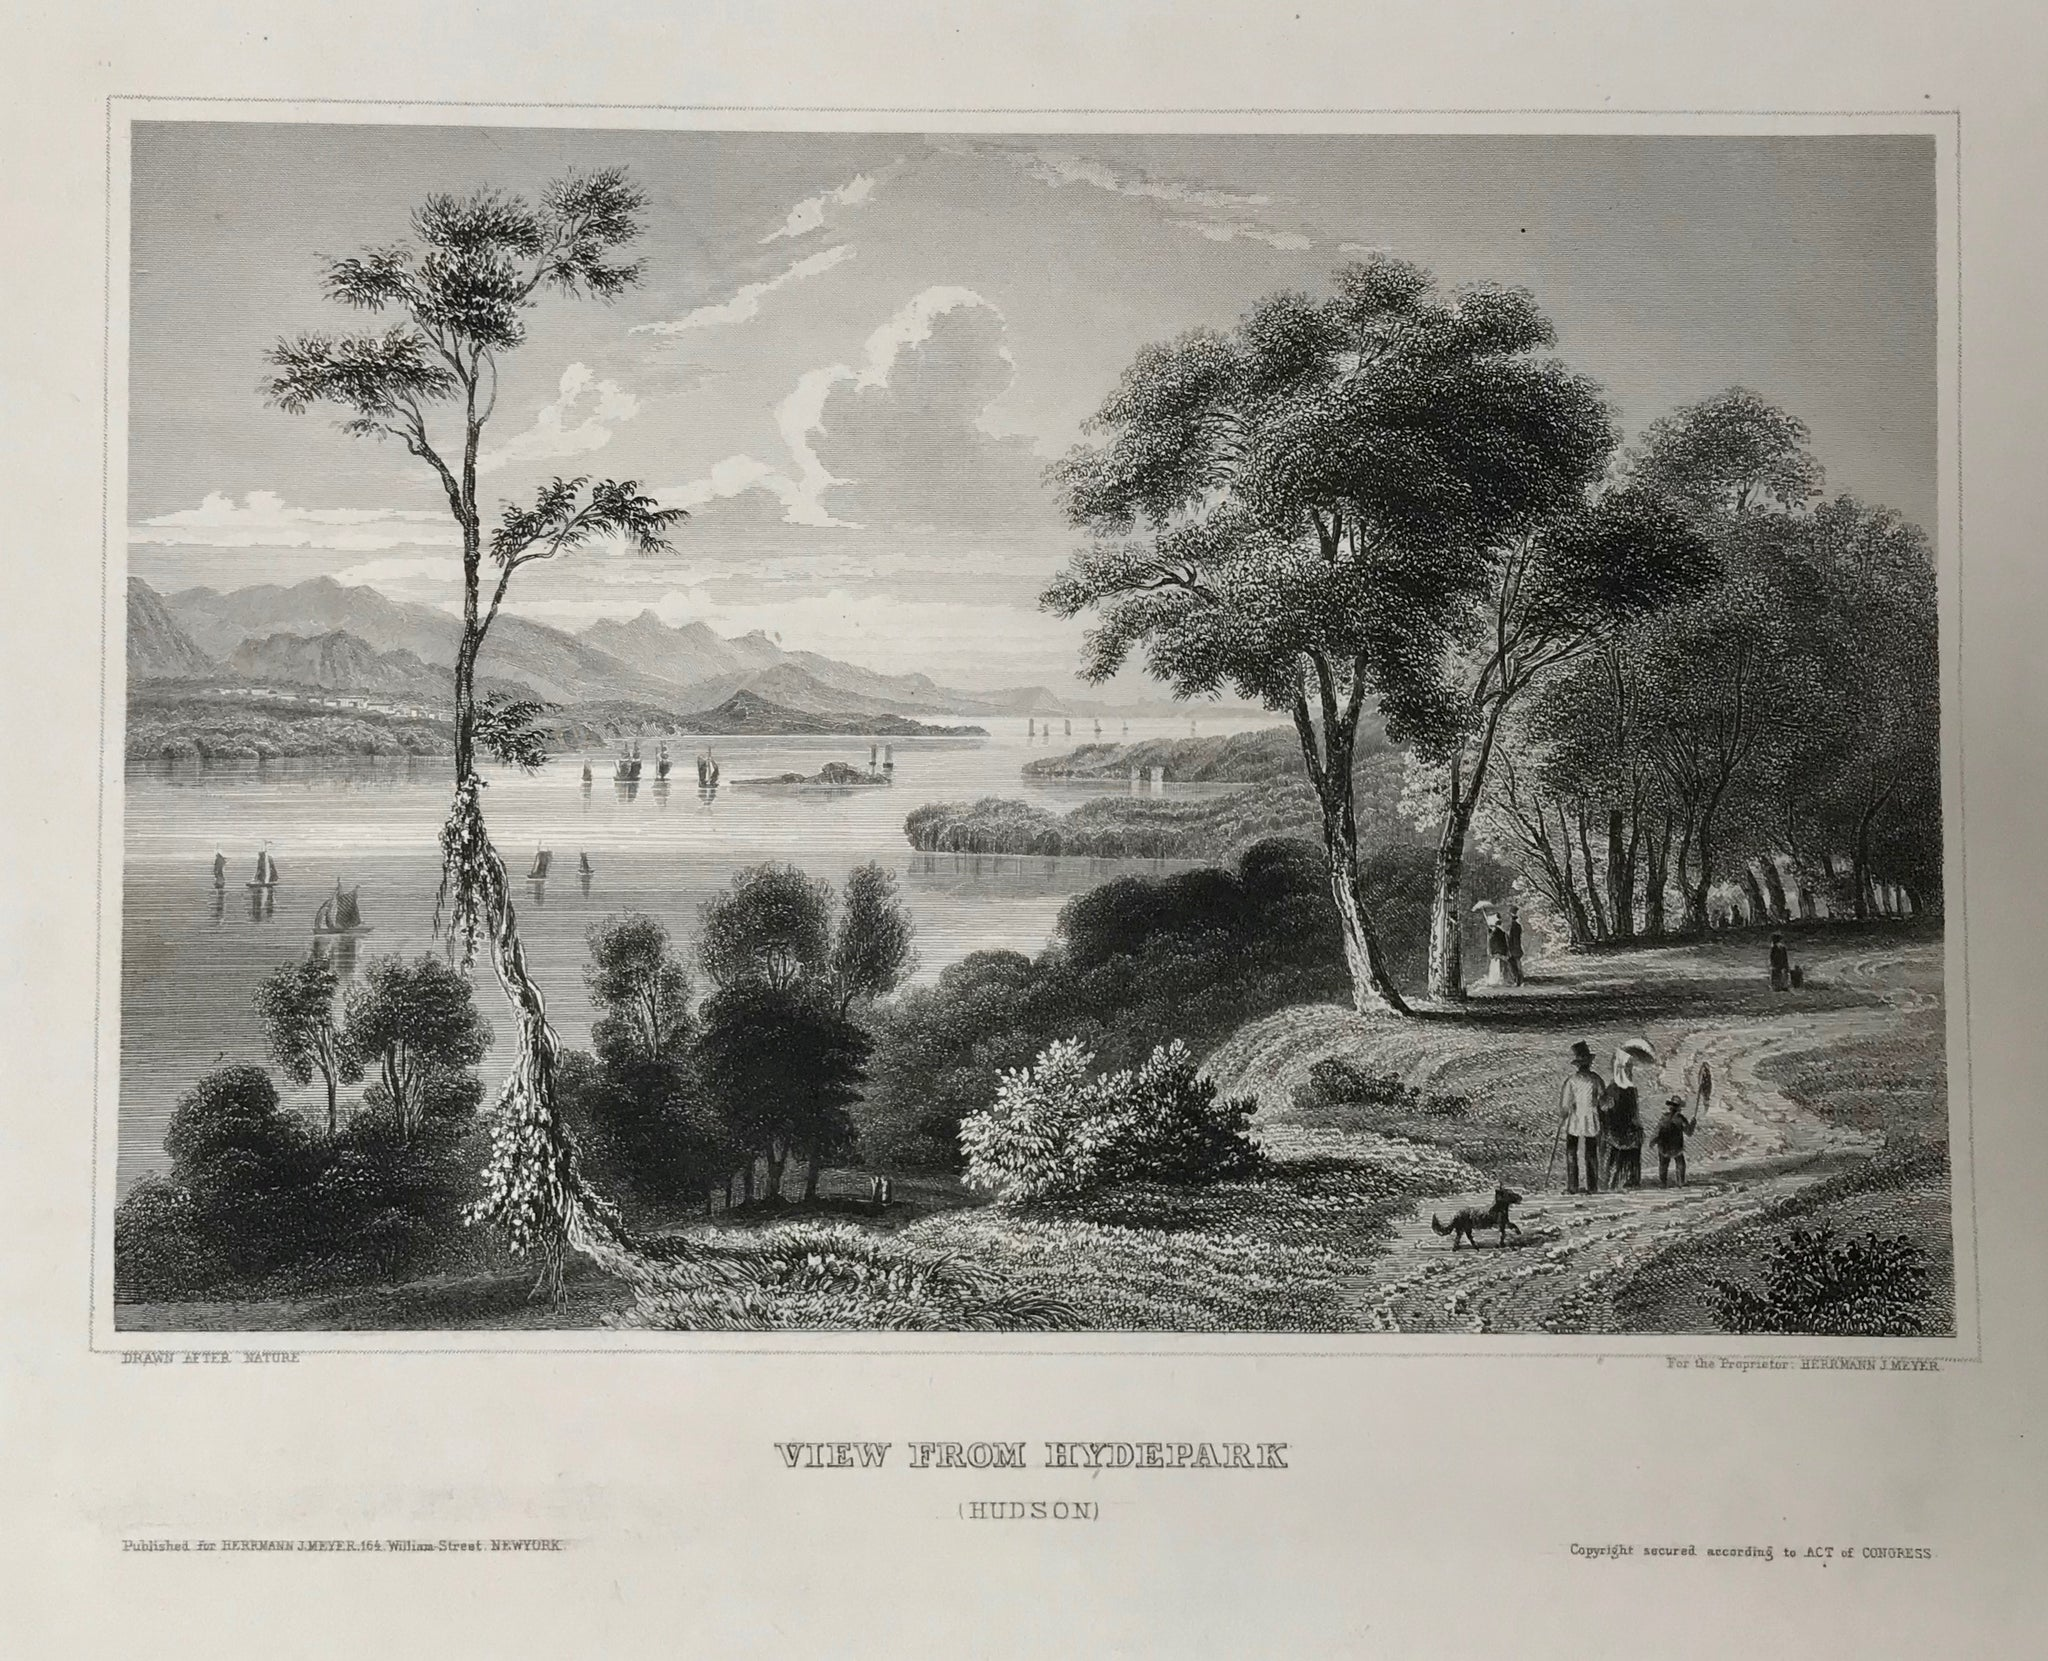 """View From Hydepark""  (Hudson)  Attractive steel engraving ca 1850. Published for Hermann Meyer in New York."